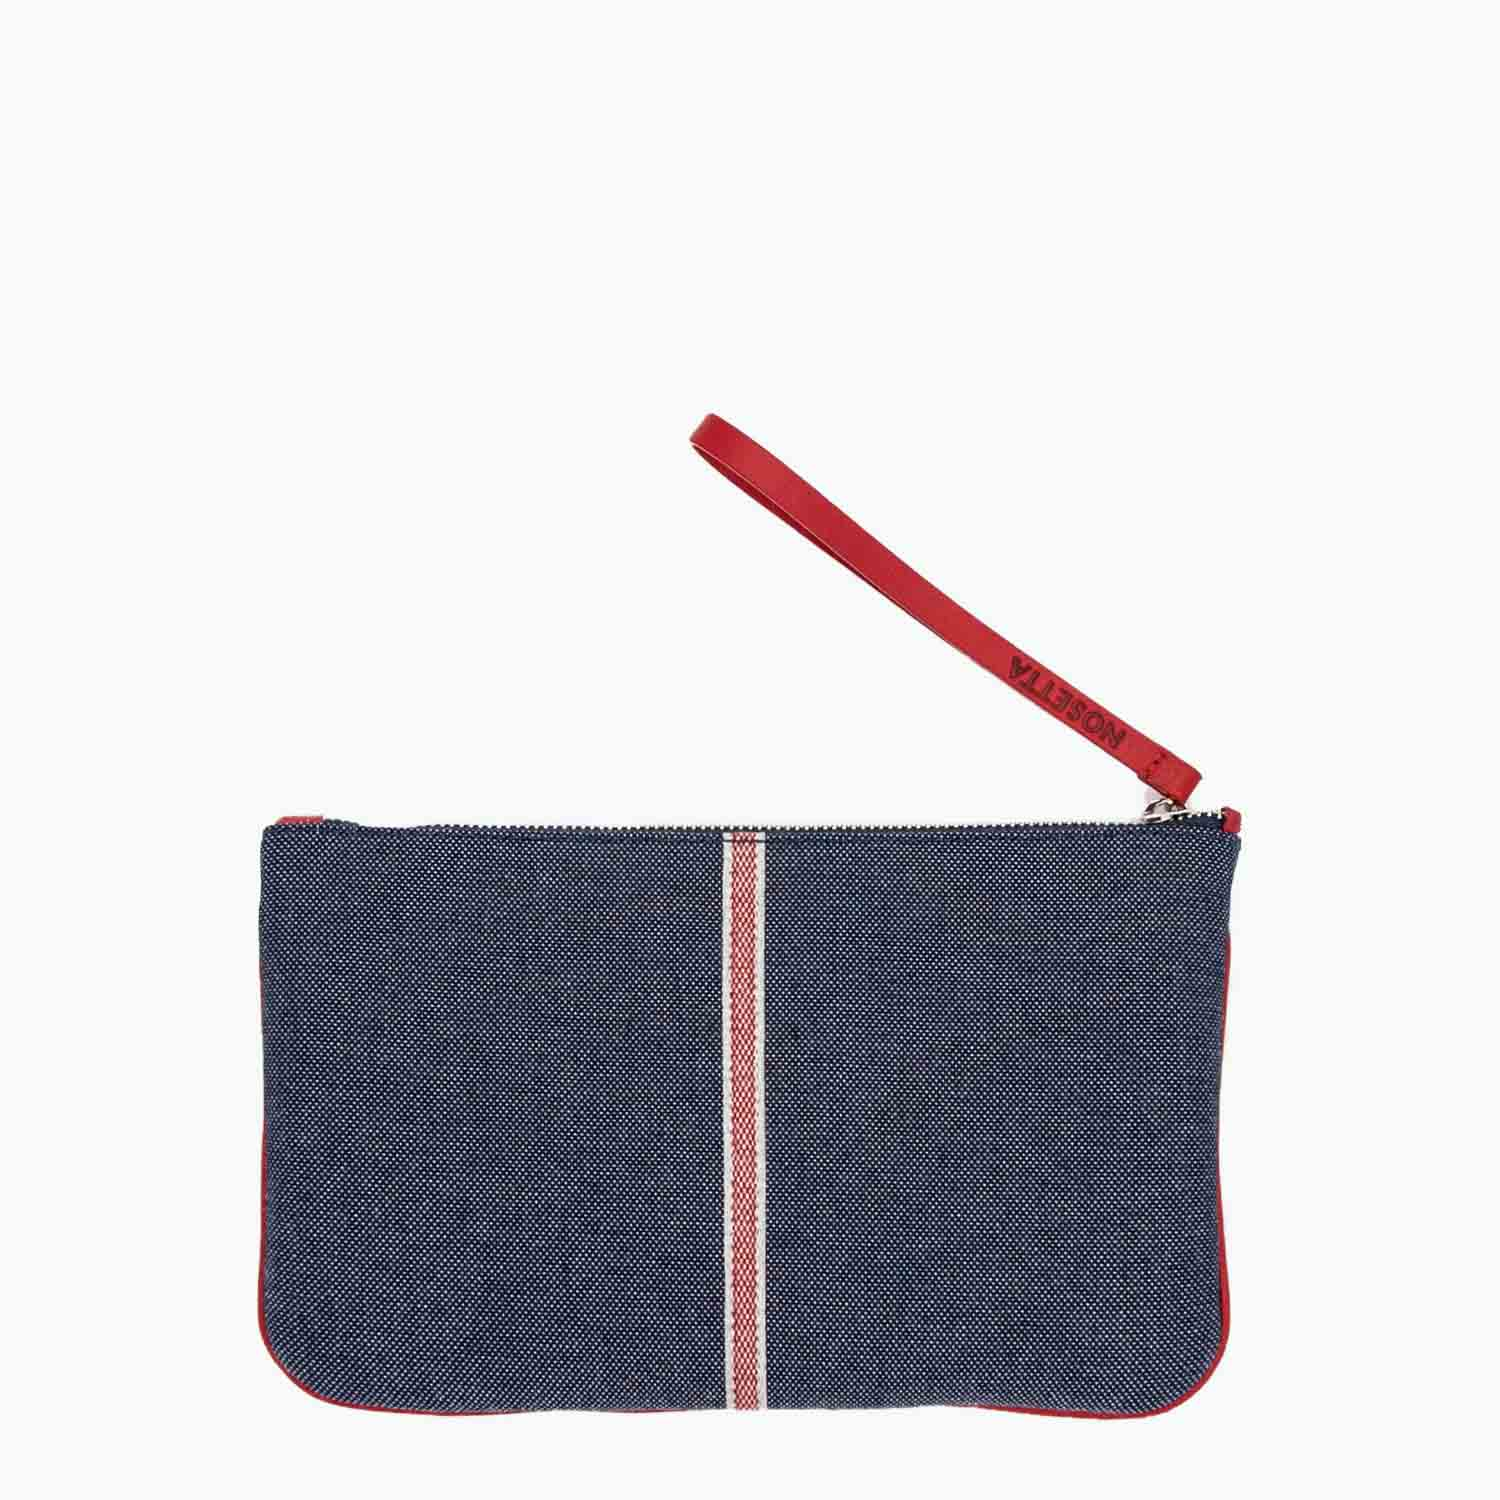 Gallia Clutch Denim and Leather